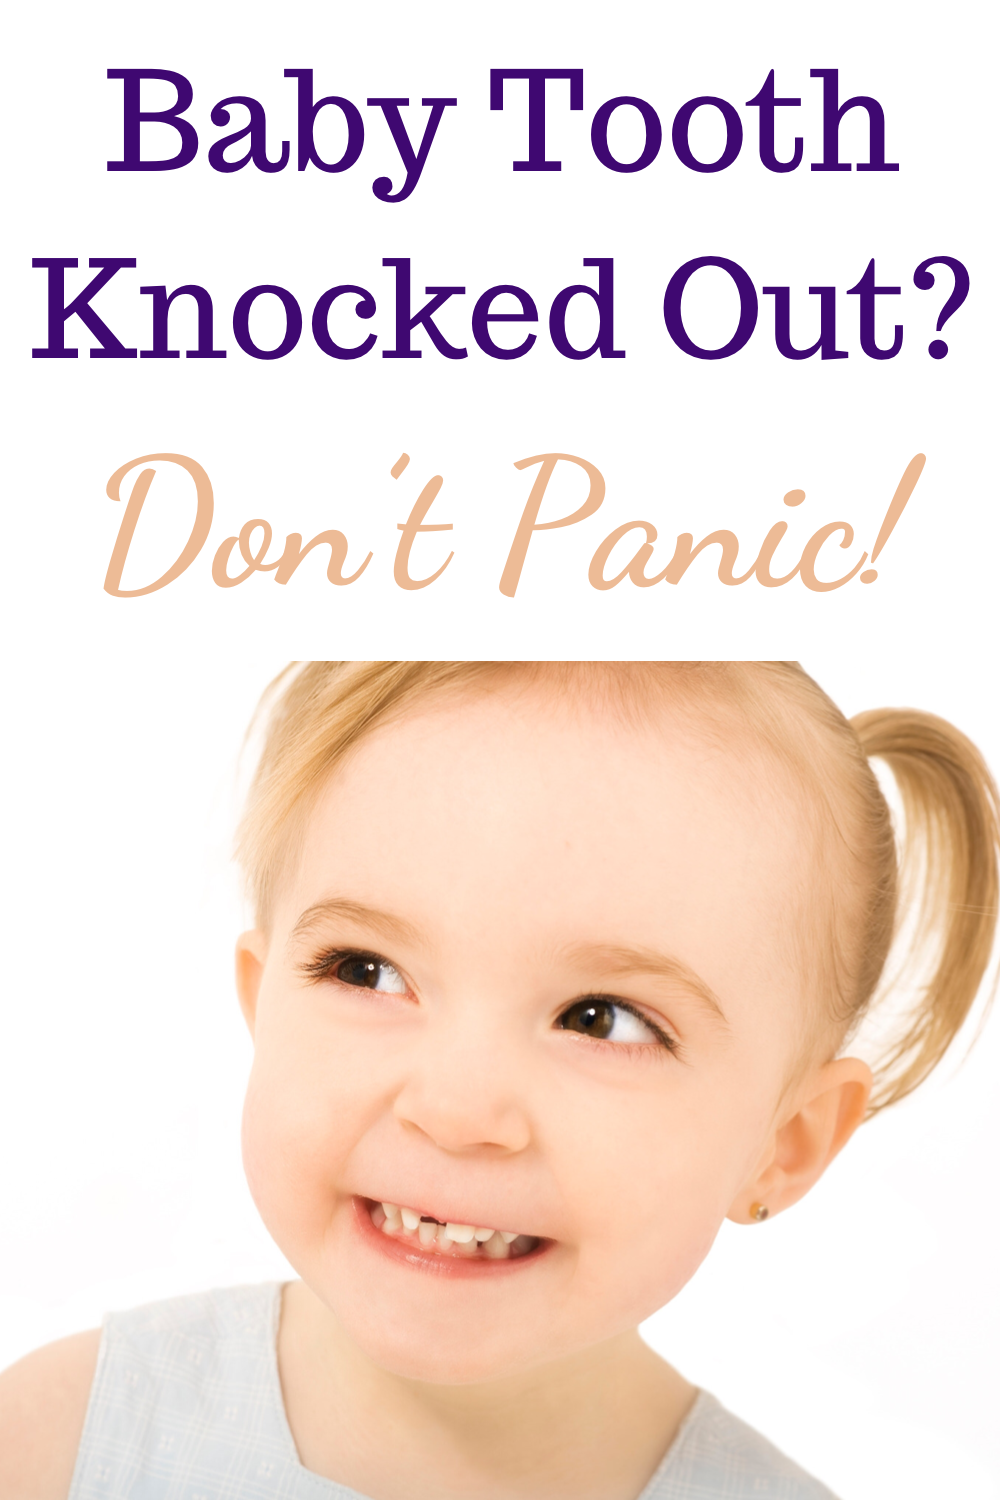 Baby tooth knocked out? Don't panic!